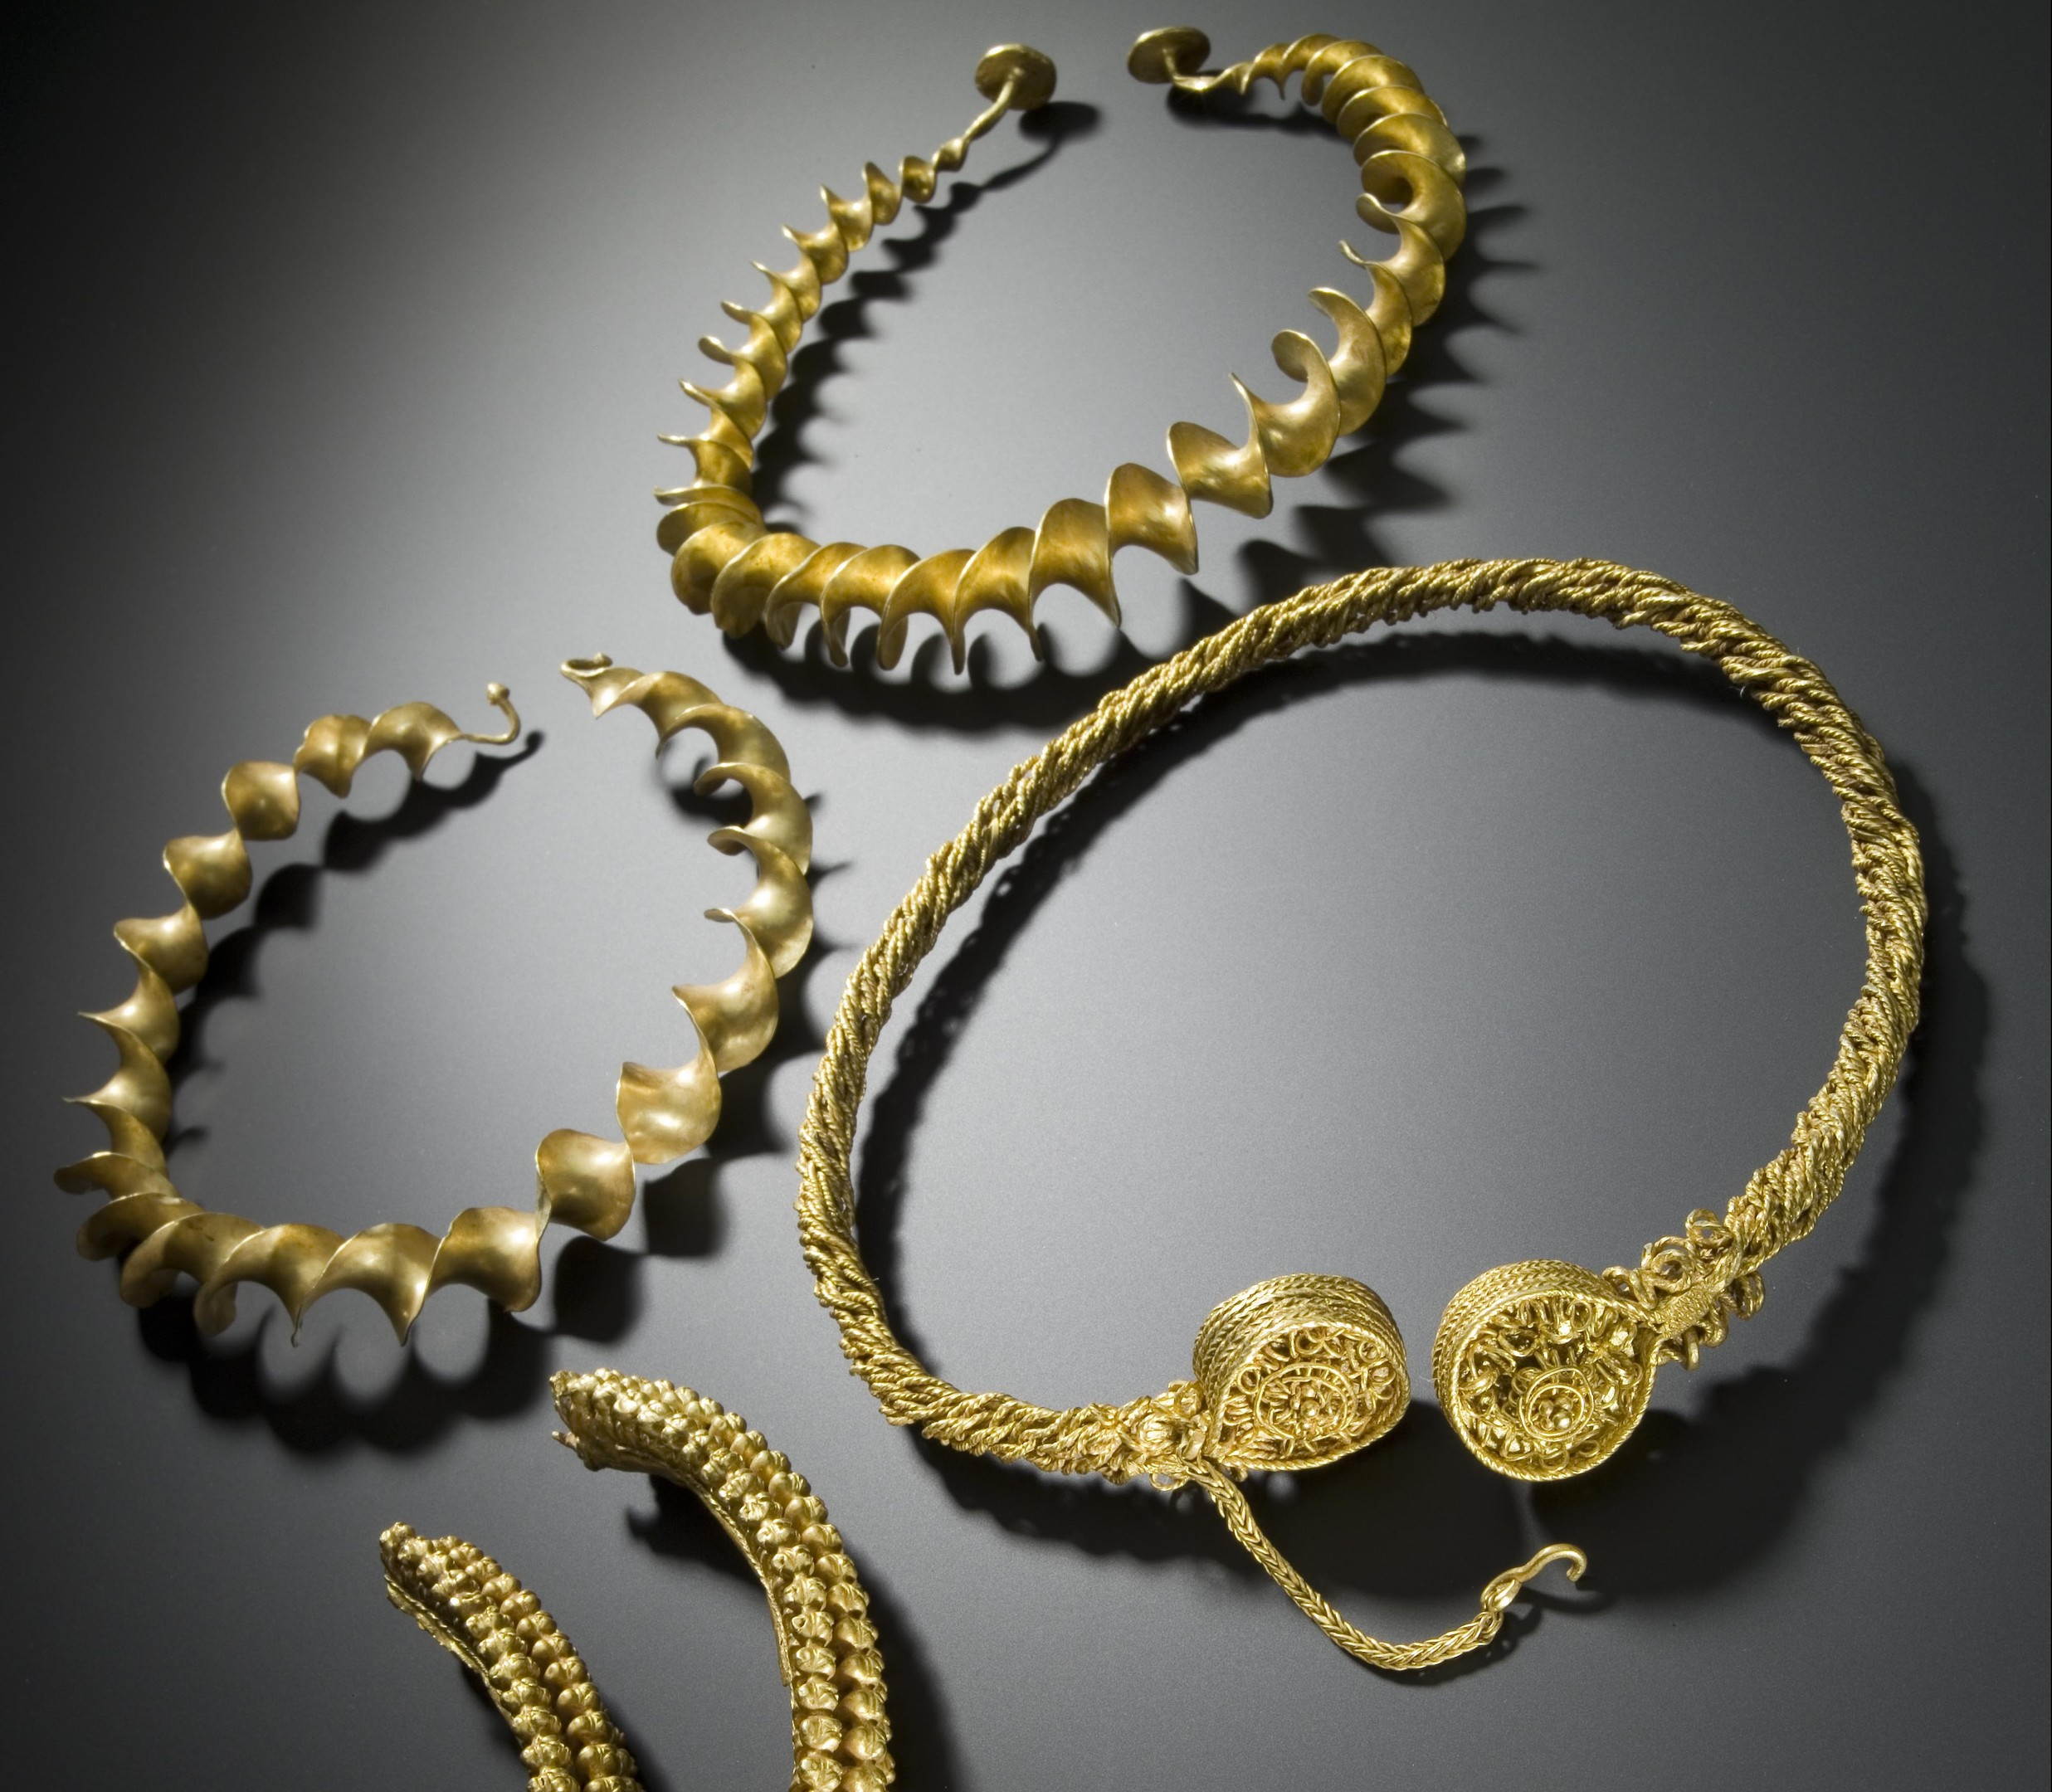 Iron Age Torcs found at Blair Drummond (National Museum of Scotland)